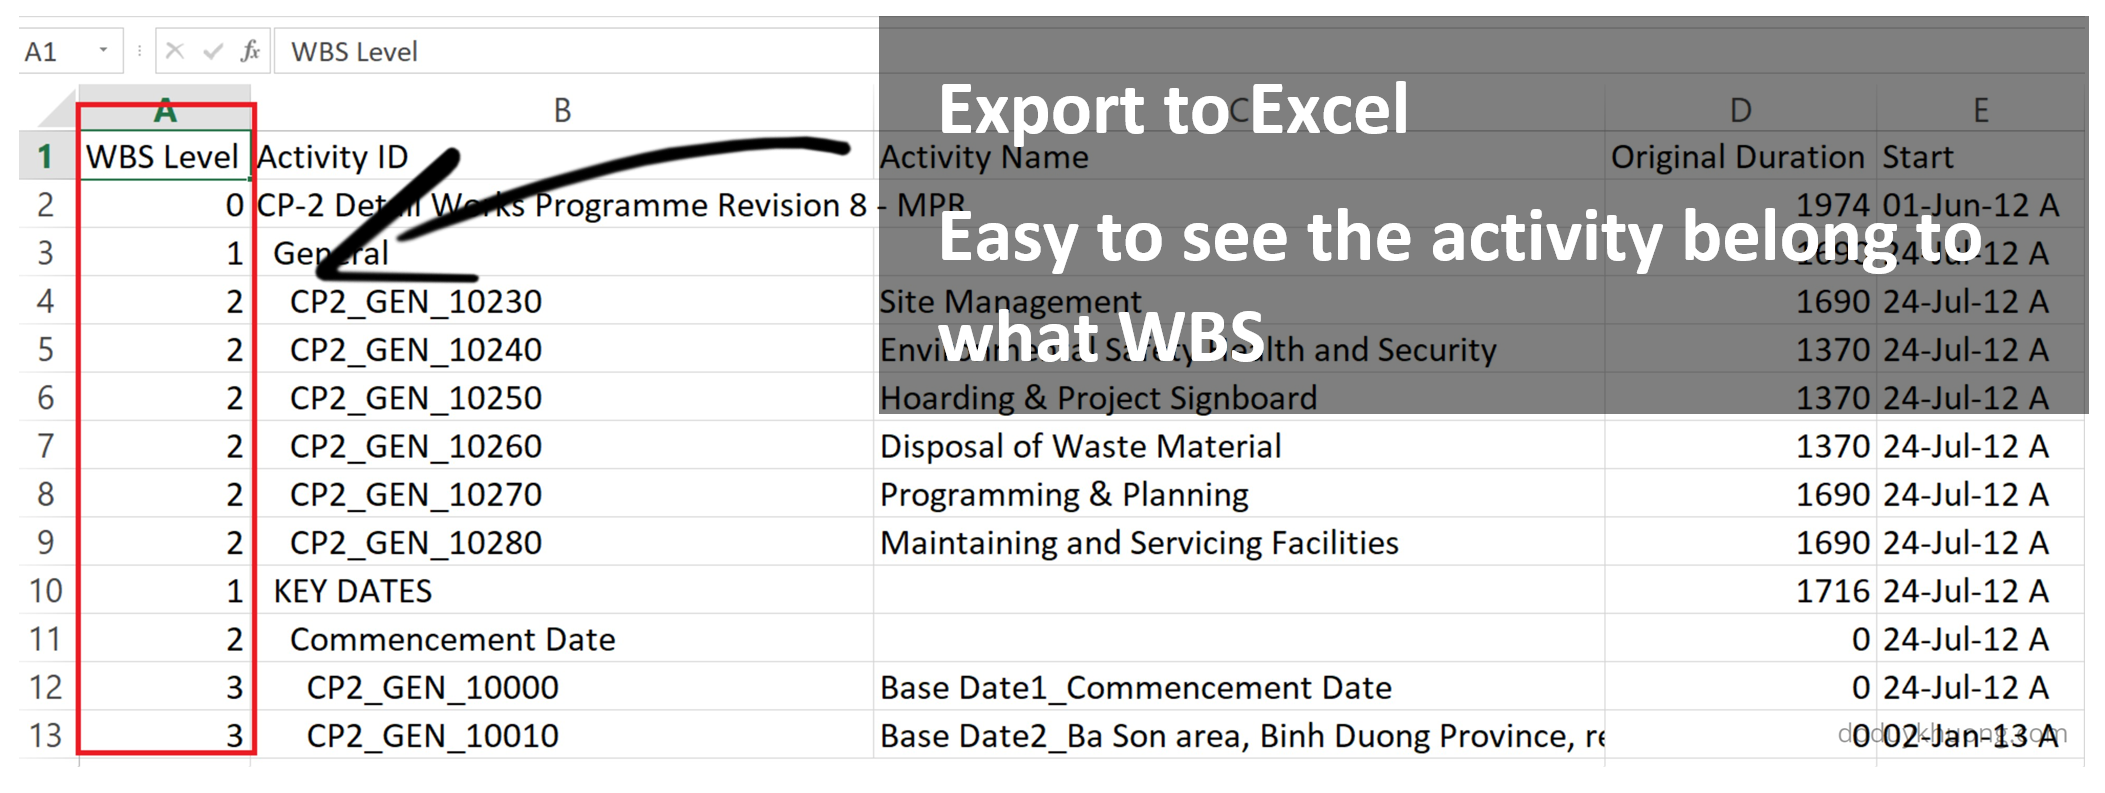 Primavera P6 export to Excel  How to identify WBS level for